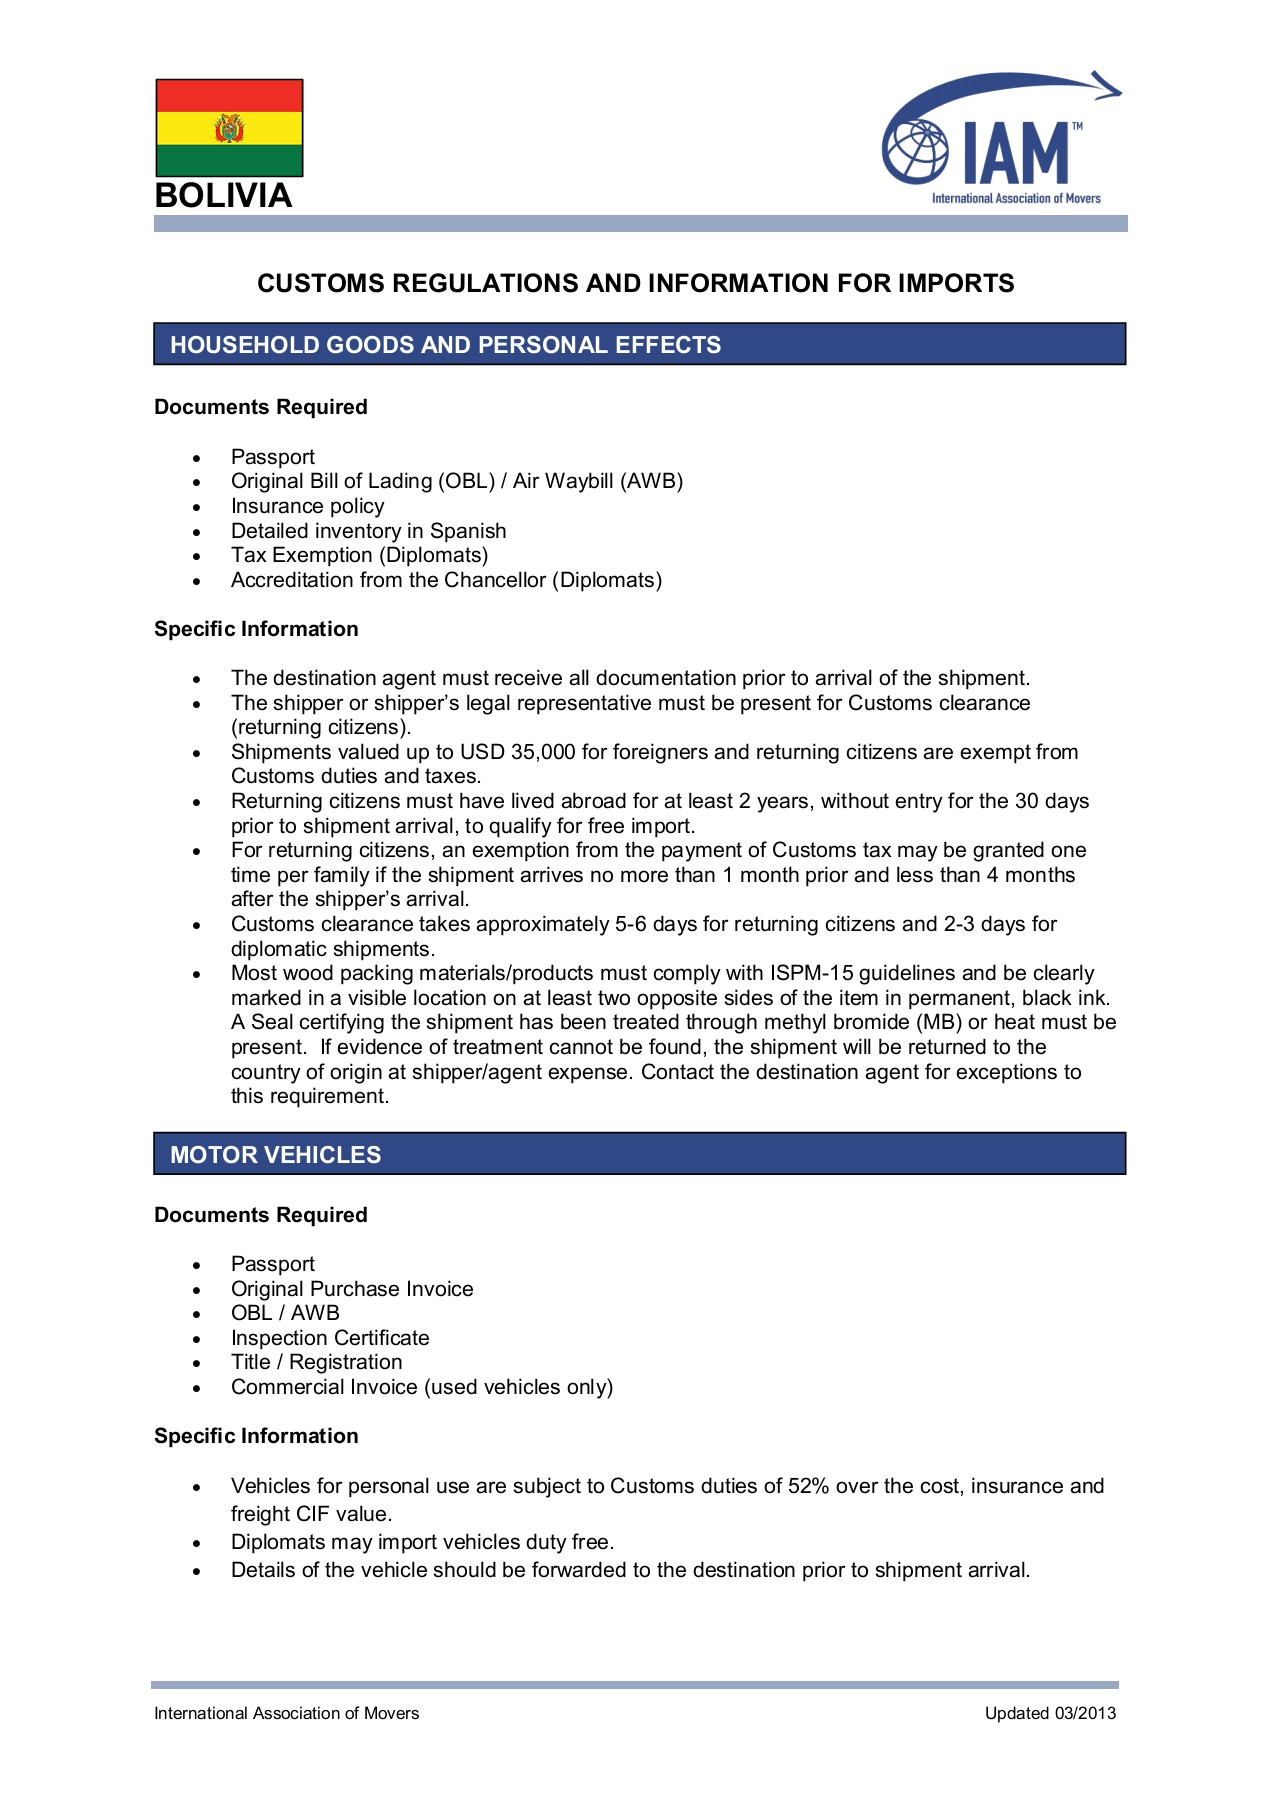 CUSTOMS REGULATIONS AND INFORMATION FOR IMPORTS Pages 1